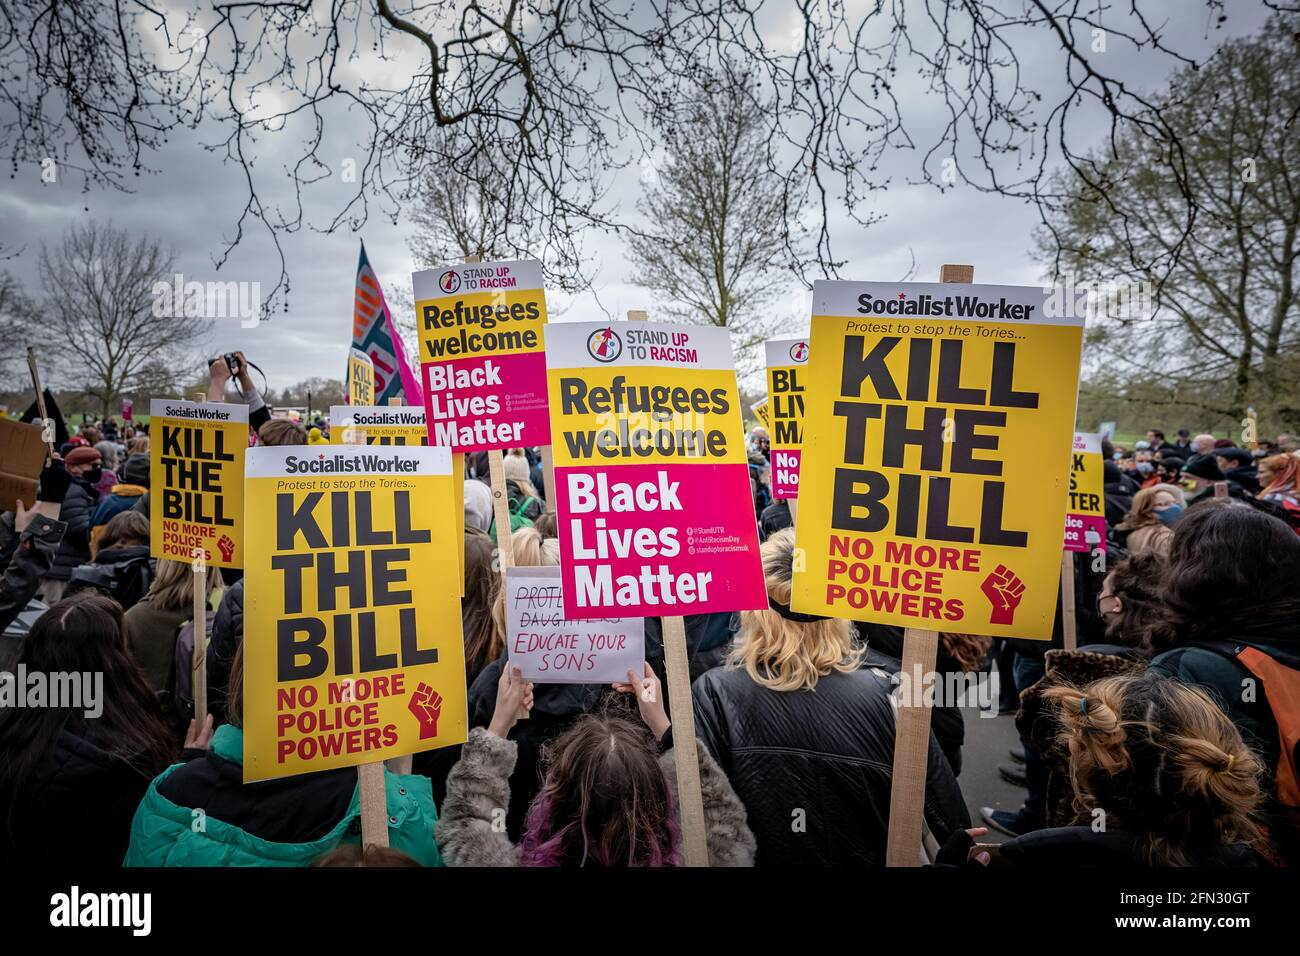 Kill The Bill Protest. Thousands of protesters gather in Hyde Park to demonstrate against a proposed 'anti-protest' policing crime bill. London, UK Stock Photo